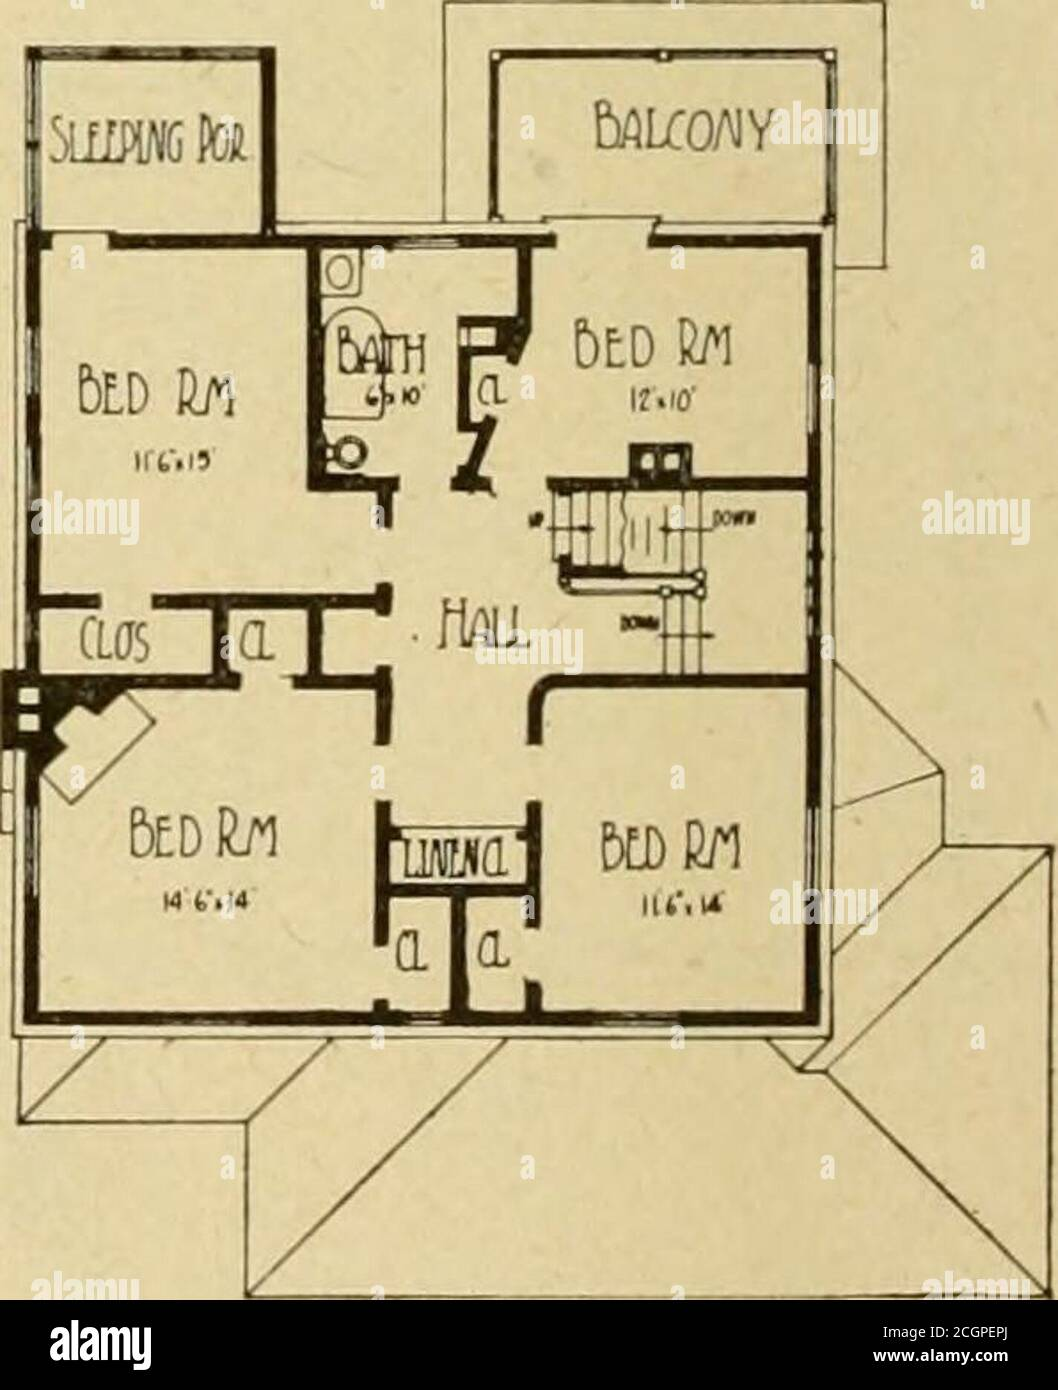 Floor Plans Executed High Resolution Stock Photography And Images Alamy